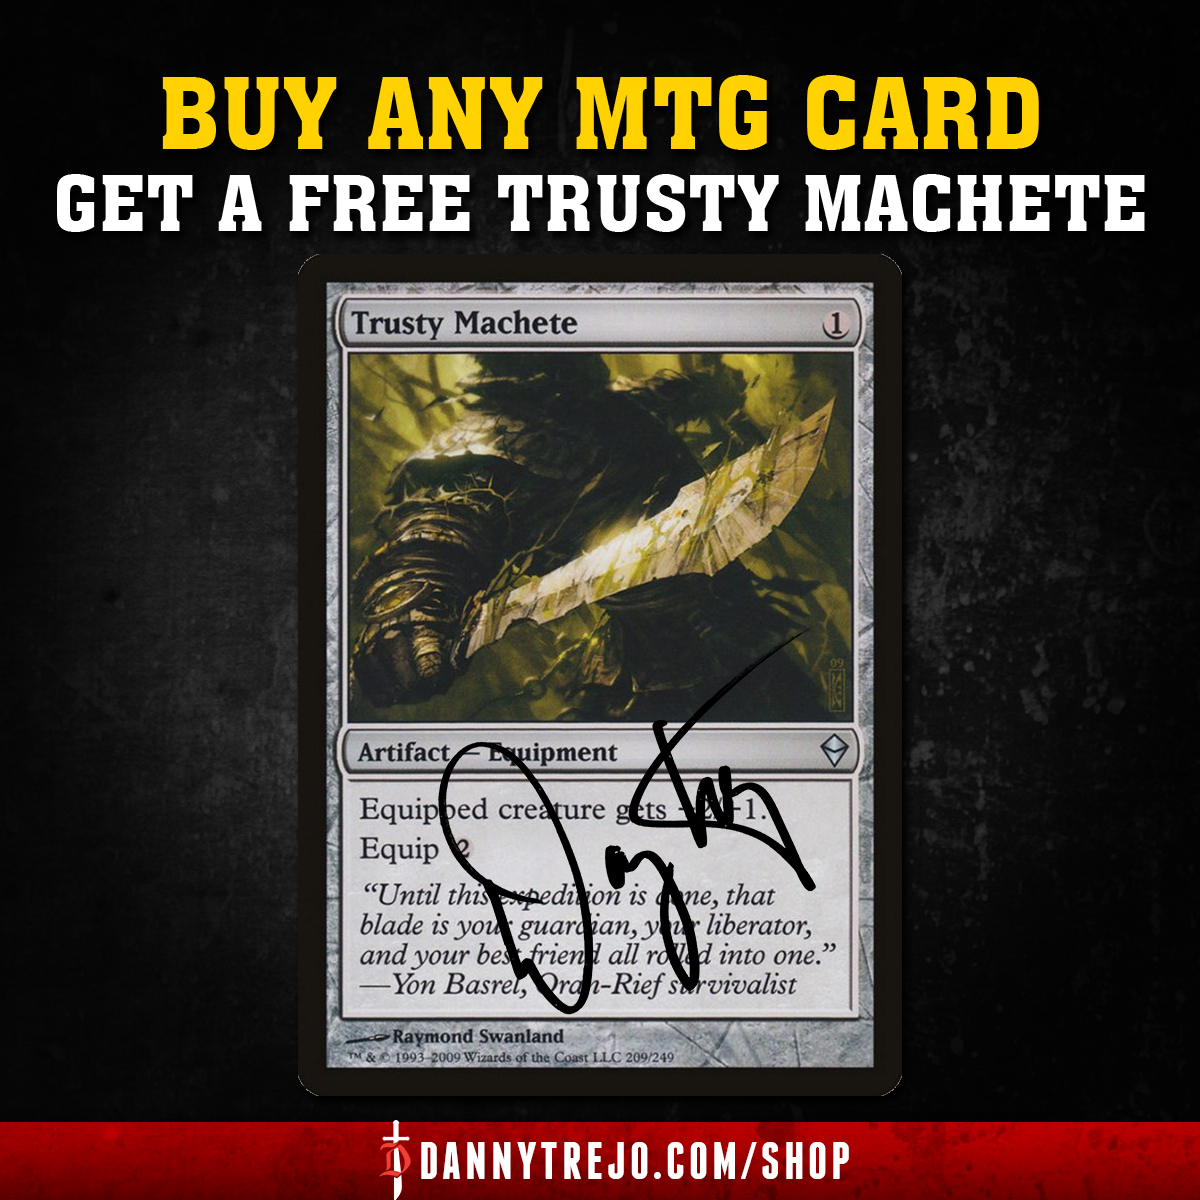 Get your hands on a FREE Autographed Trusty Machete whenever you order ANY MTG Card off my shop now until July 5th! Shop here: https://t.co/QuYVrmn33l https://t.co/OWvJcxmOvO